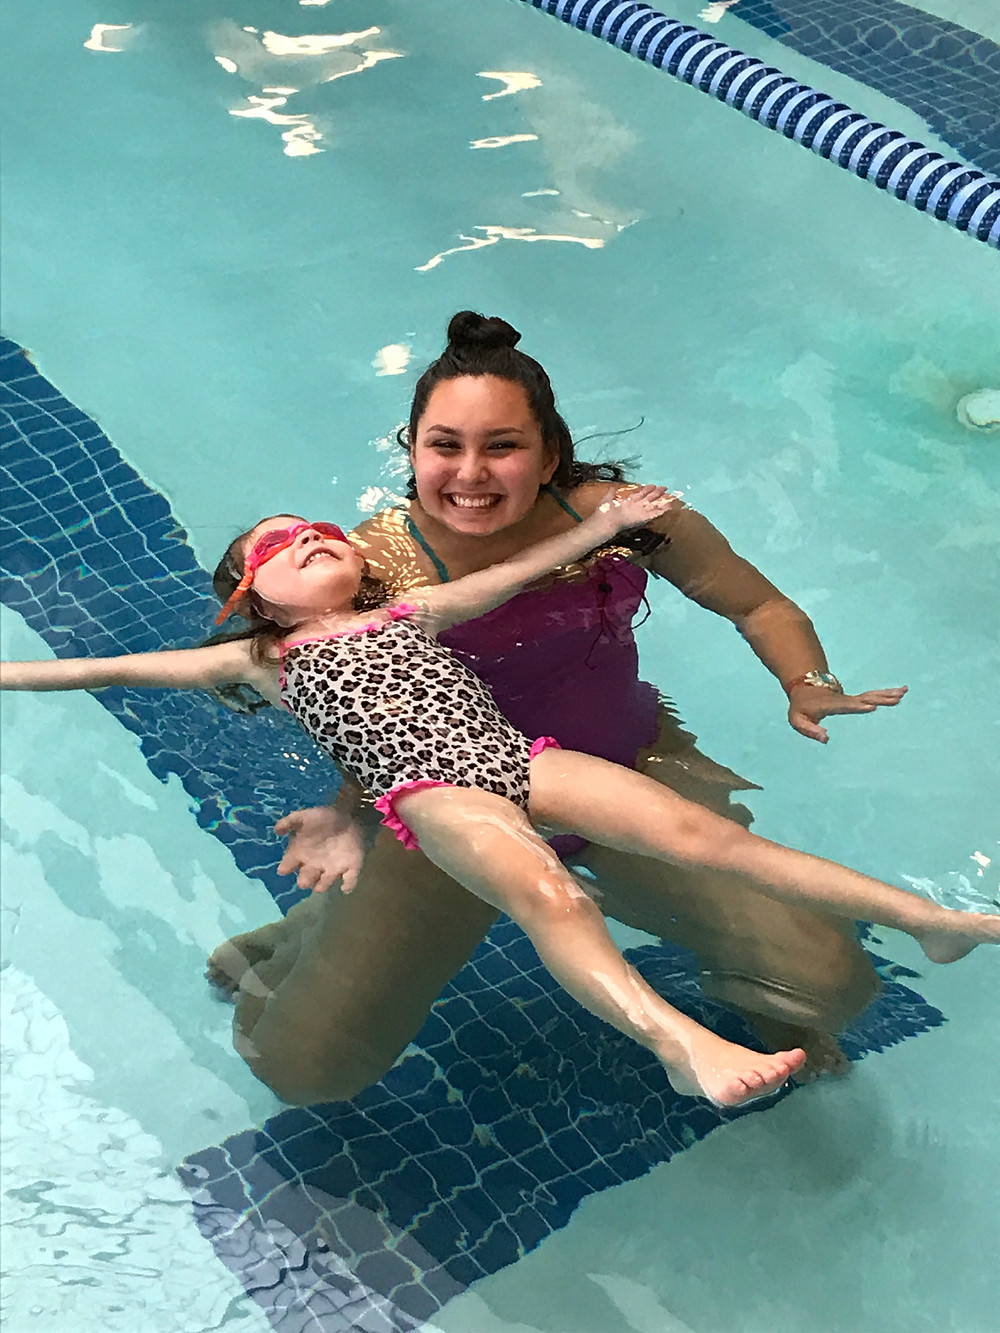 Once swimmers learn and improve their 4 strokes (butterfly, backstroke, breaststroke, freestyle), it will be time for their first USA Swimming sanctioned competition.